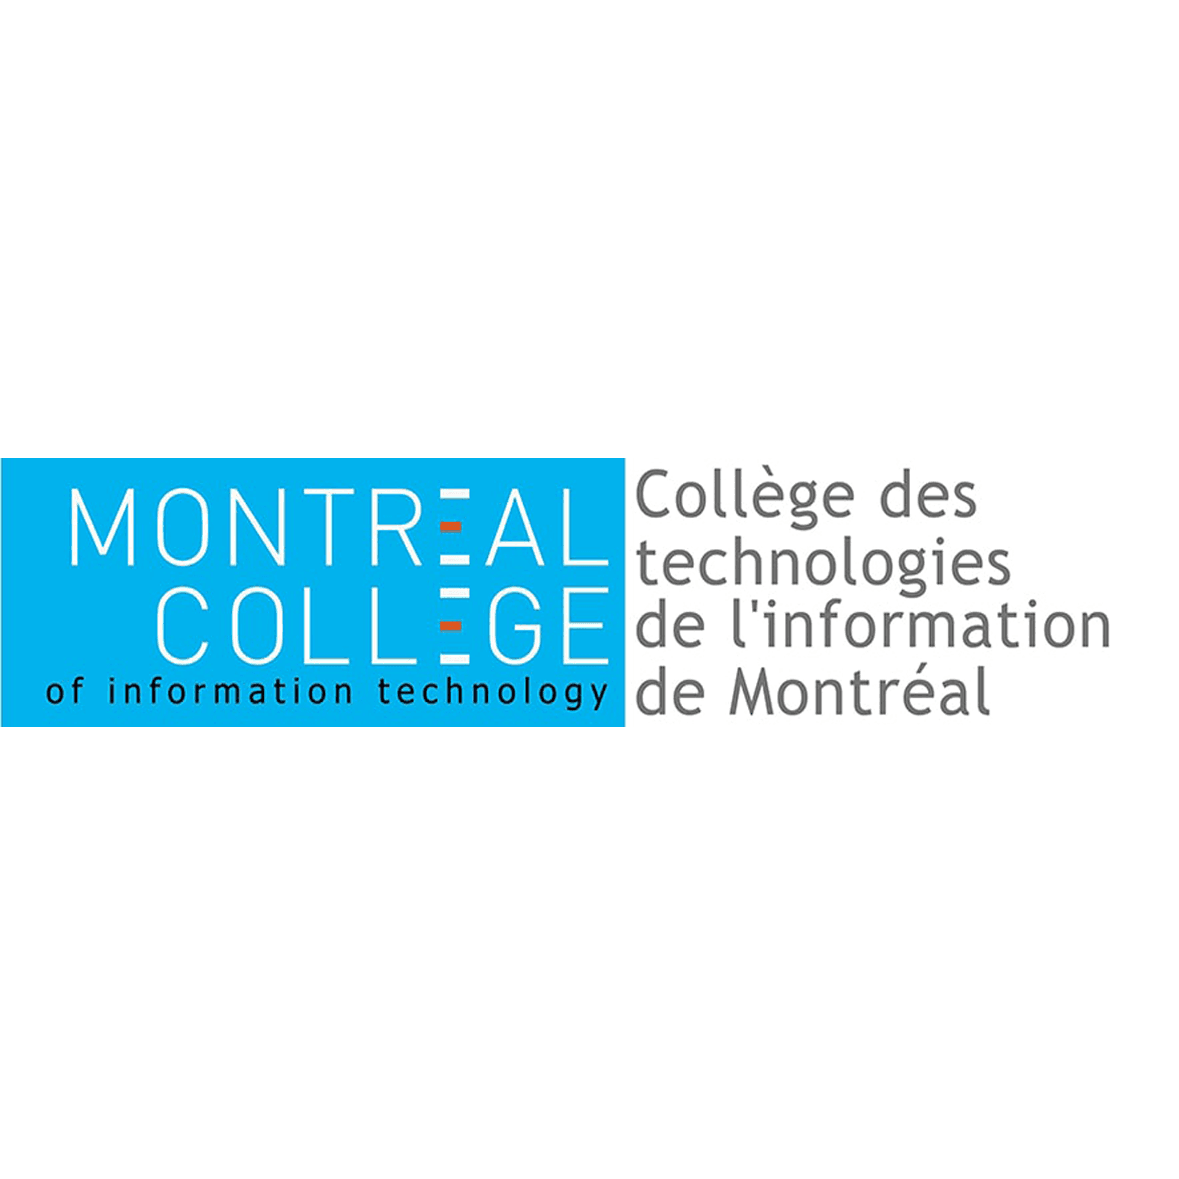 MONTREAL COLLEGE OF INFORMATION TECHNOLOGY Logo